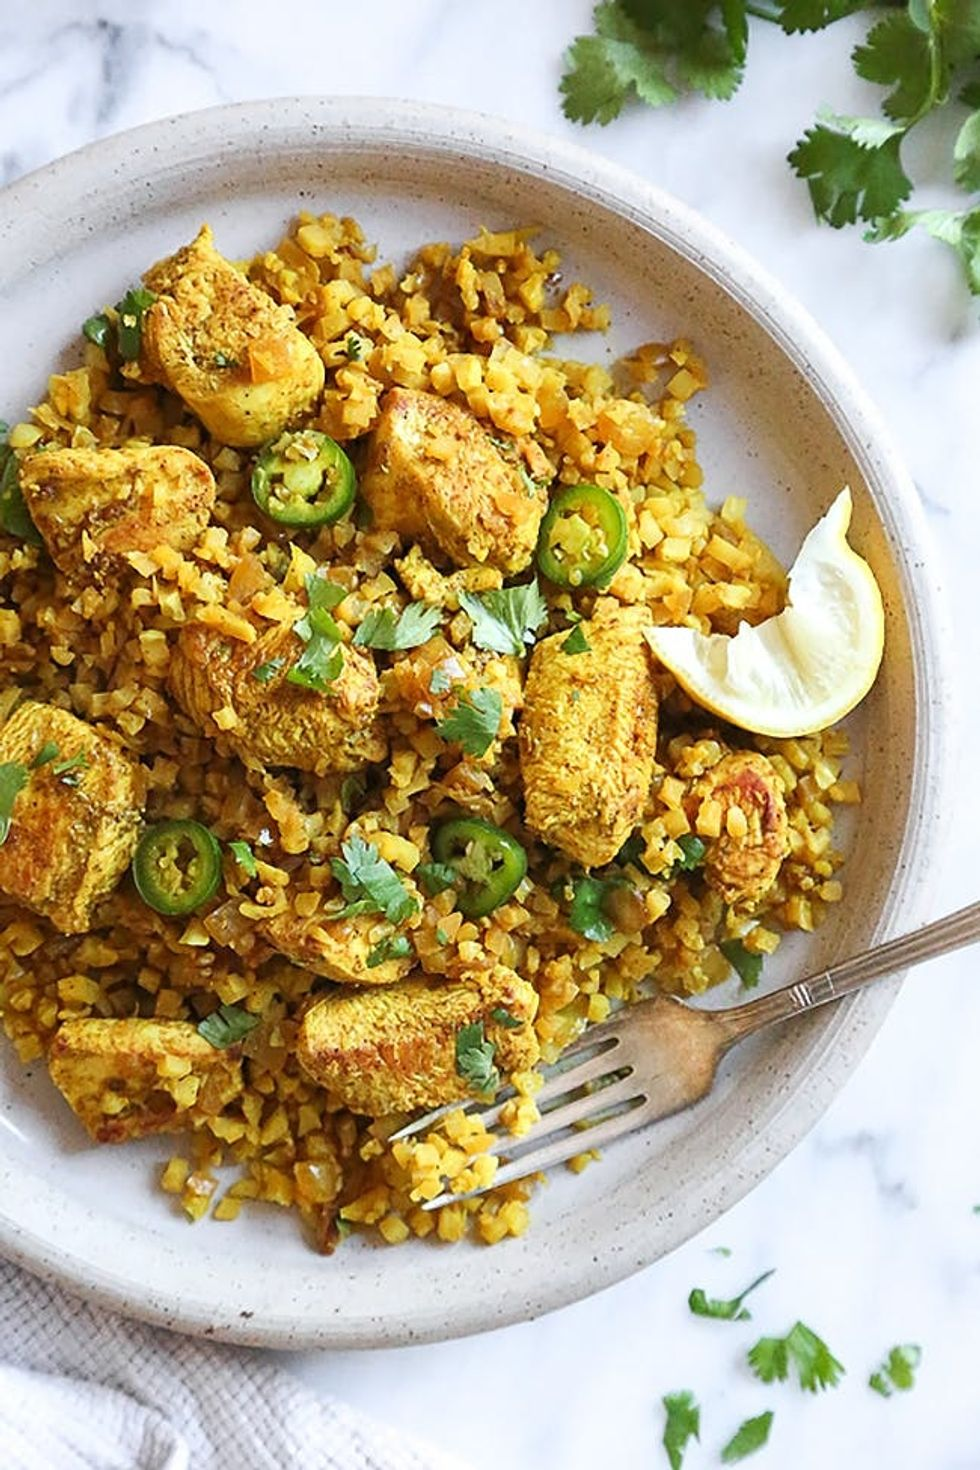 25 Delicious Indian Recipes To Spice Up Your Meal Planning Brit Co